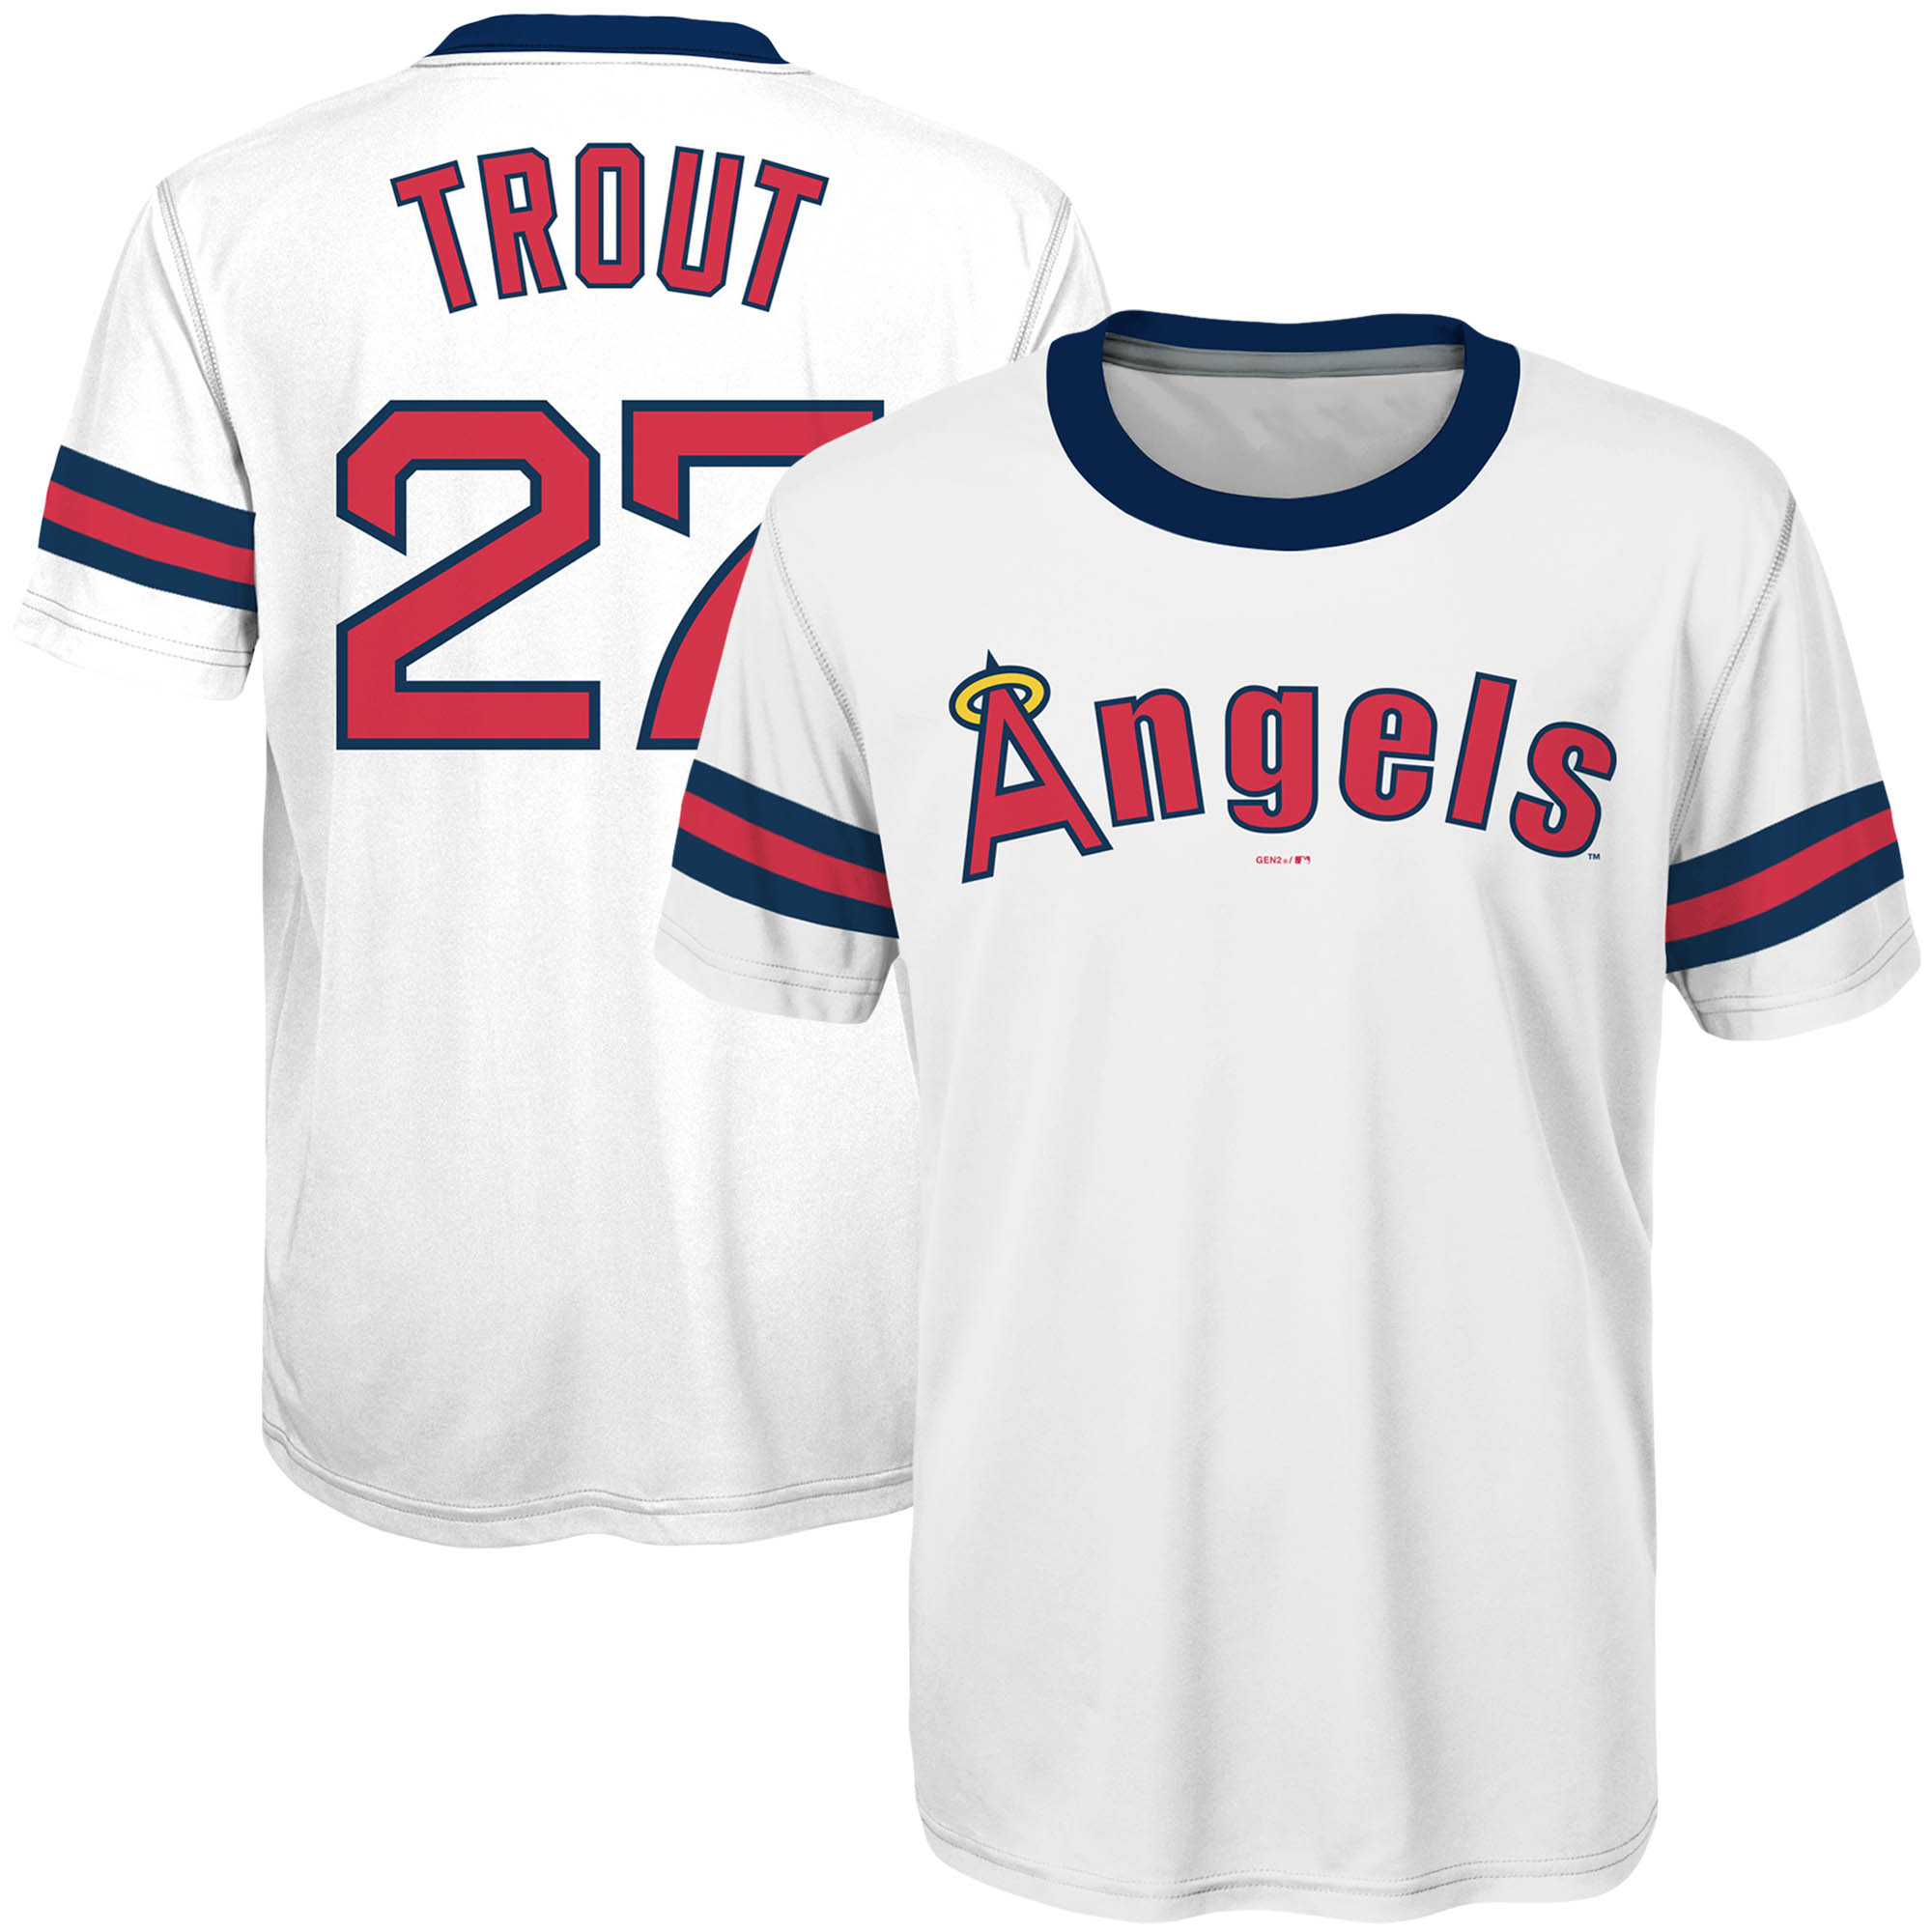 Mike Trout Los Angeles Angels Majestic Youth Sublimated Cooperstown Collection Jersey T-Shirt - White